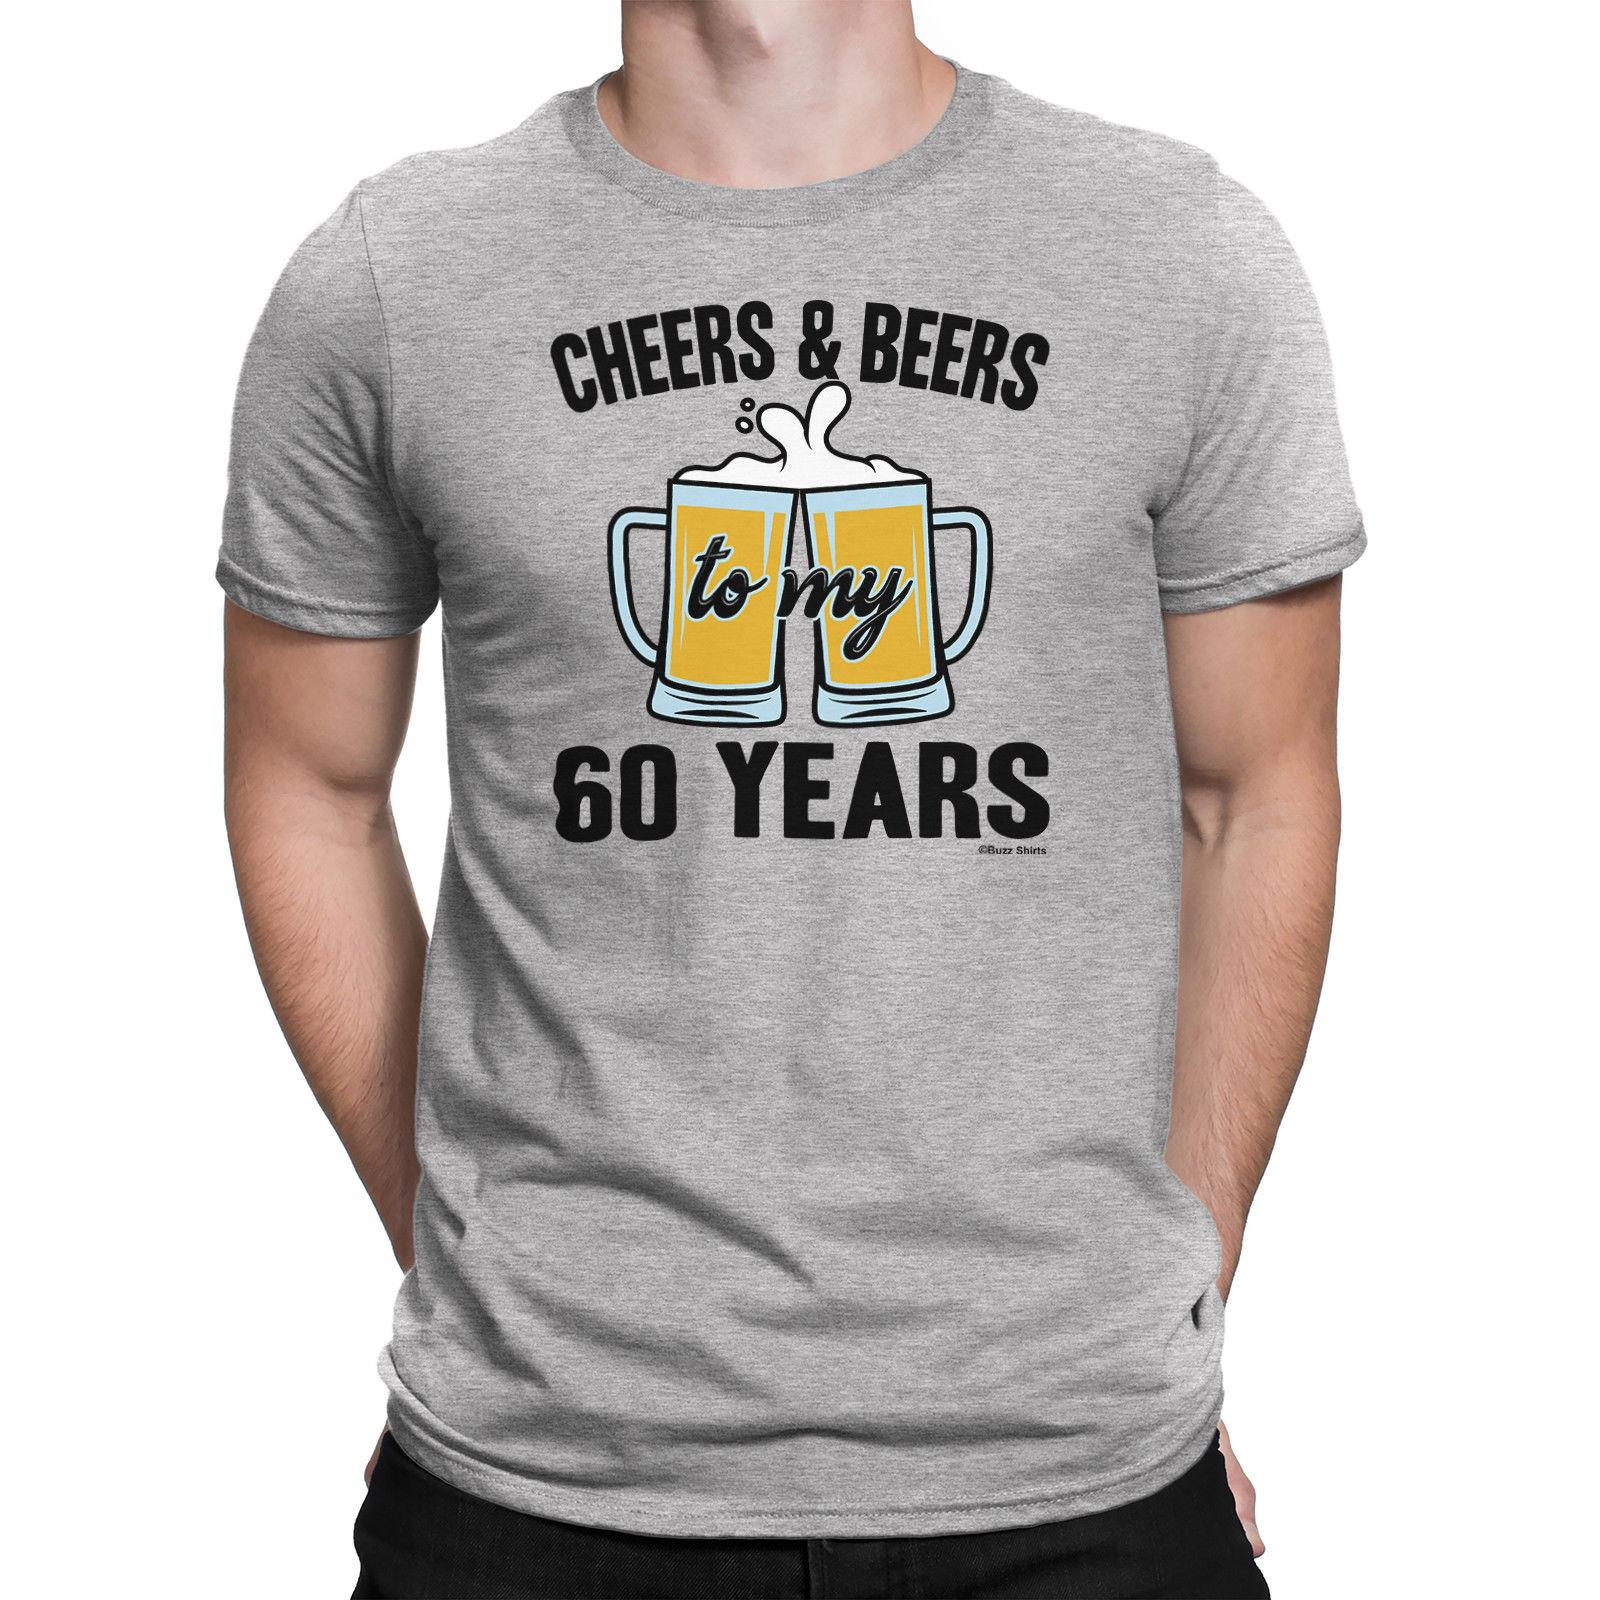 bb658308f Details Zu Mens 60th BIRTHDAY TShirt CHEERS And BEERS To 60 Years Old Gift  Sixty Daily Tee Shirts Coolest Shirt From Lukehappy14, $12.96| DHgate.Com